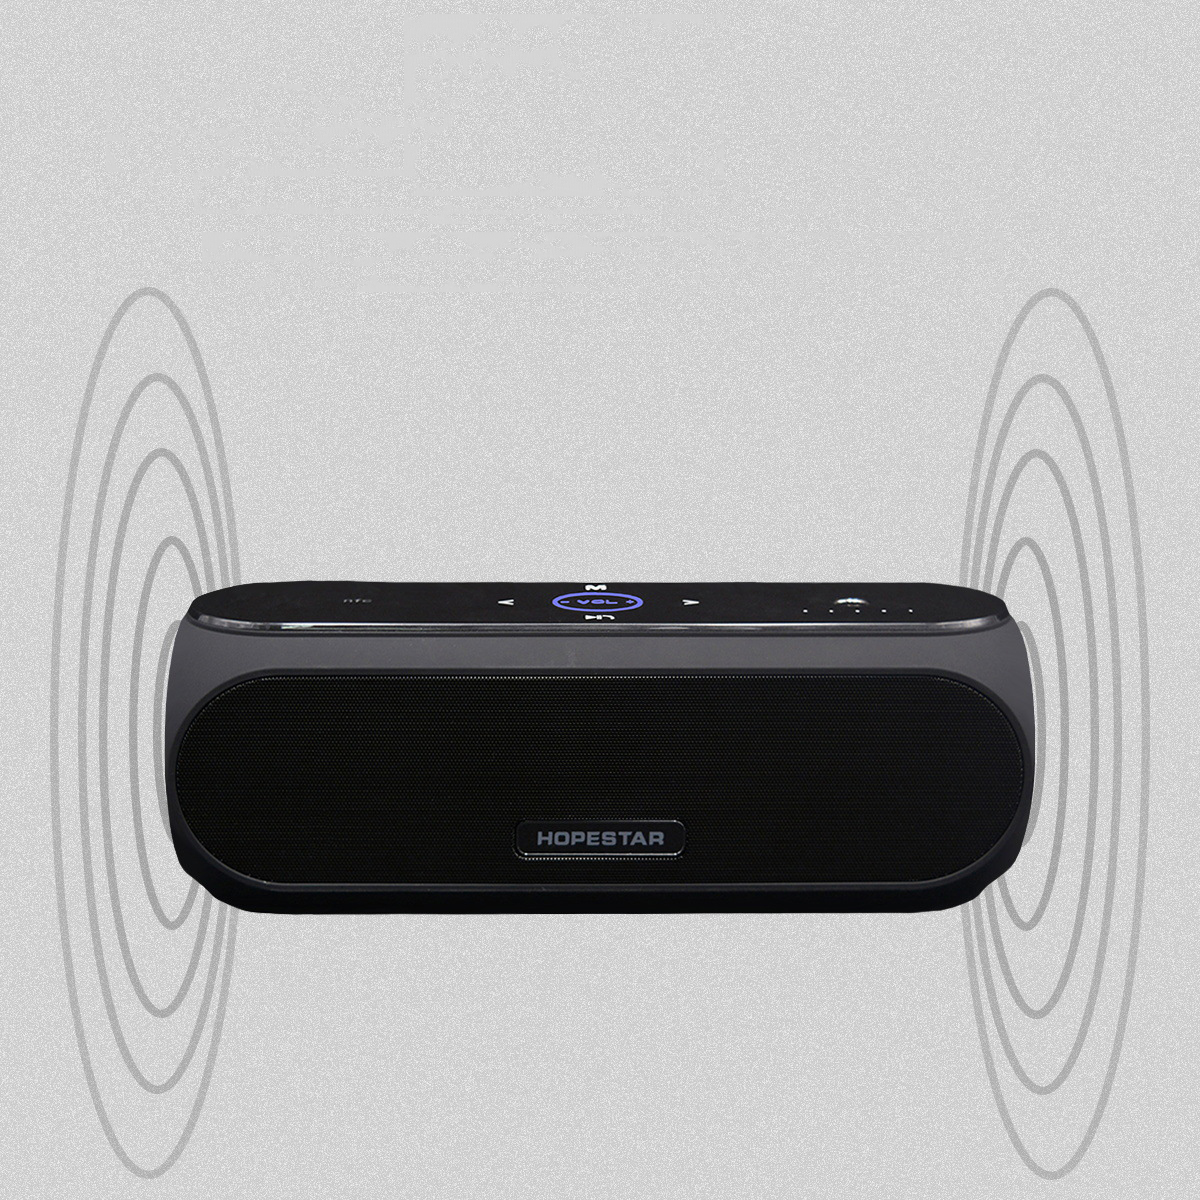 ФОТО 2017 New Arrival HOPESTAR H19 Wireless Bluetooth Speaker Bass Sound System 3D Stereo Music Surround Support NFC TF card AUX USB